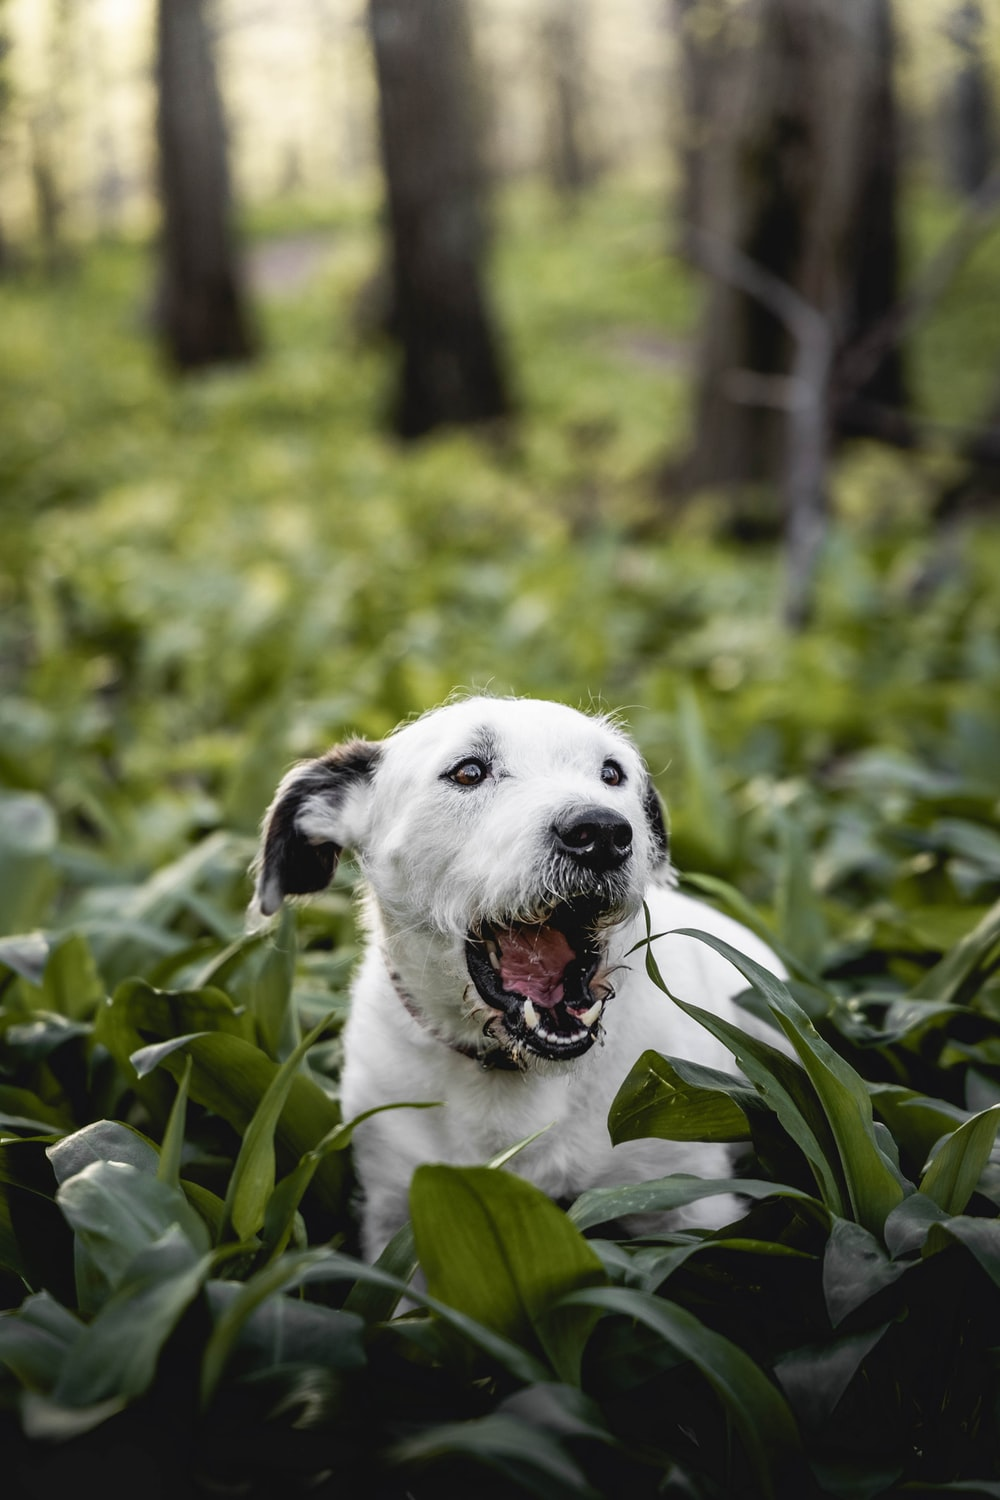 white and black short coated dog on green grass during daytime